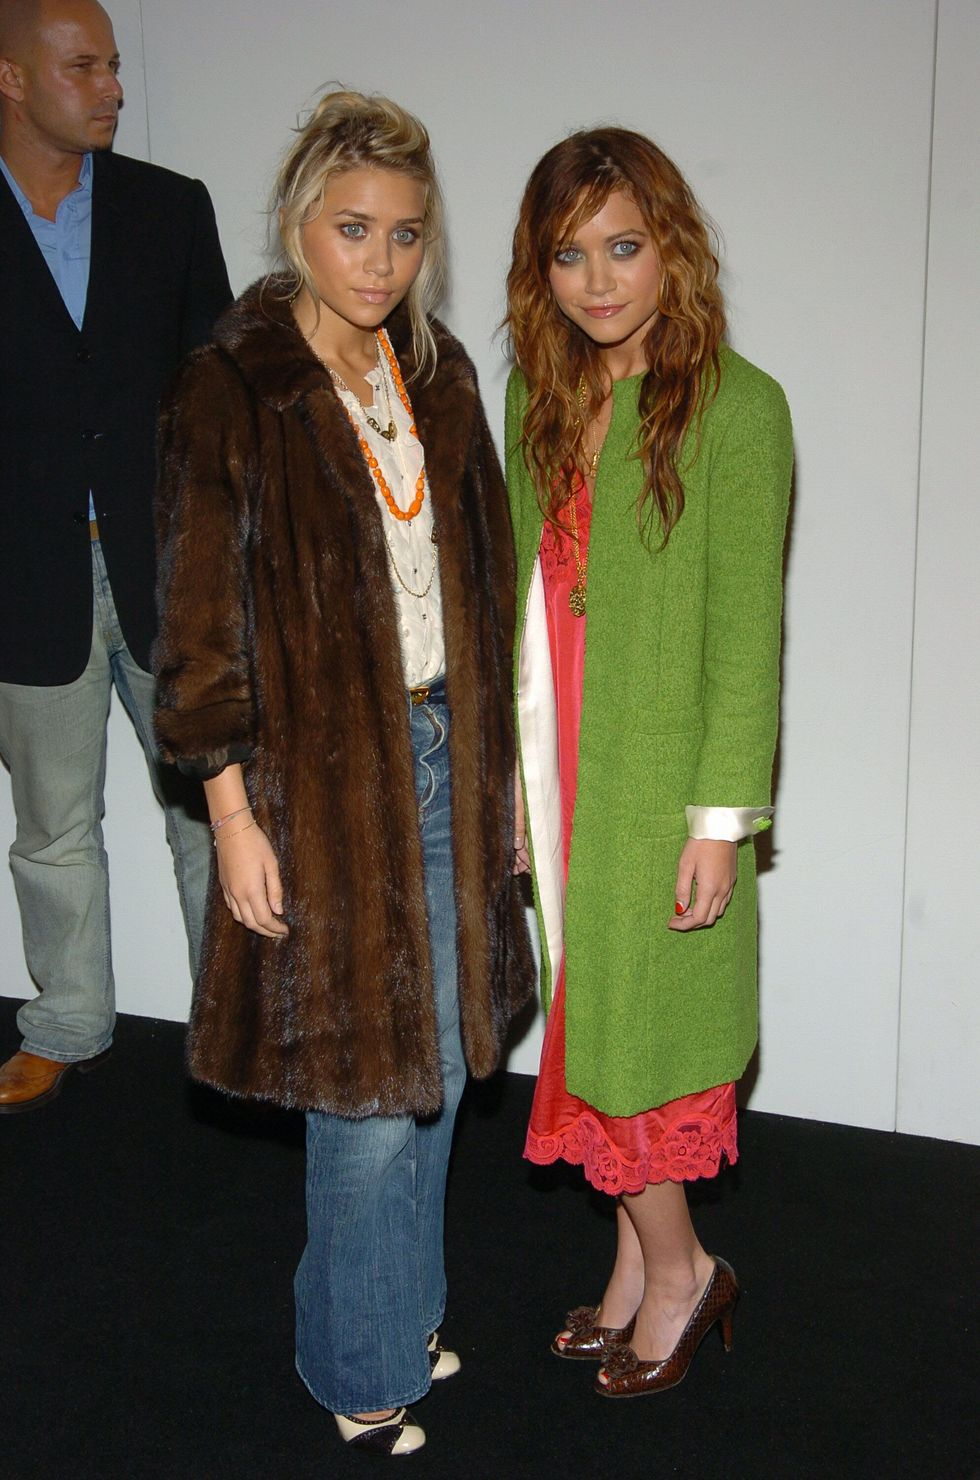 September 14, 2004 The twins dressed down for Marc Jacobs's fashion show.